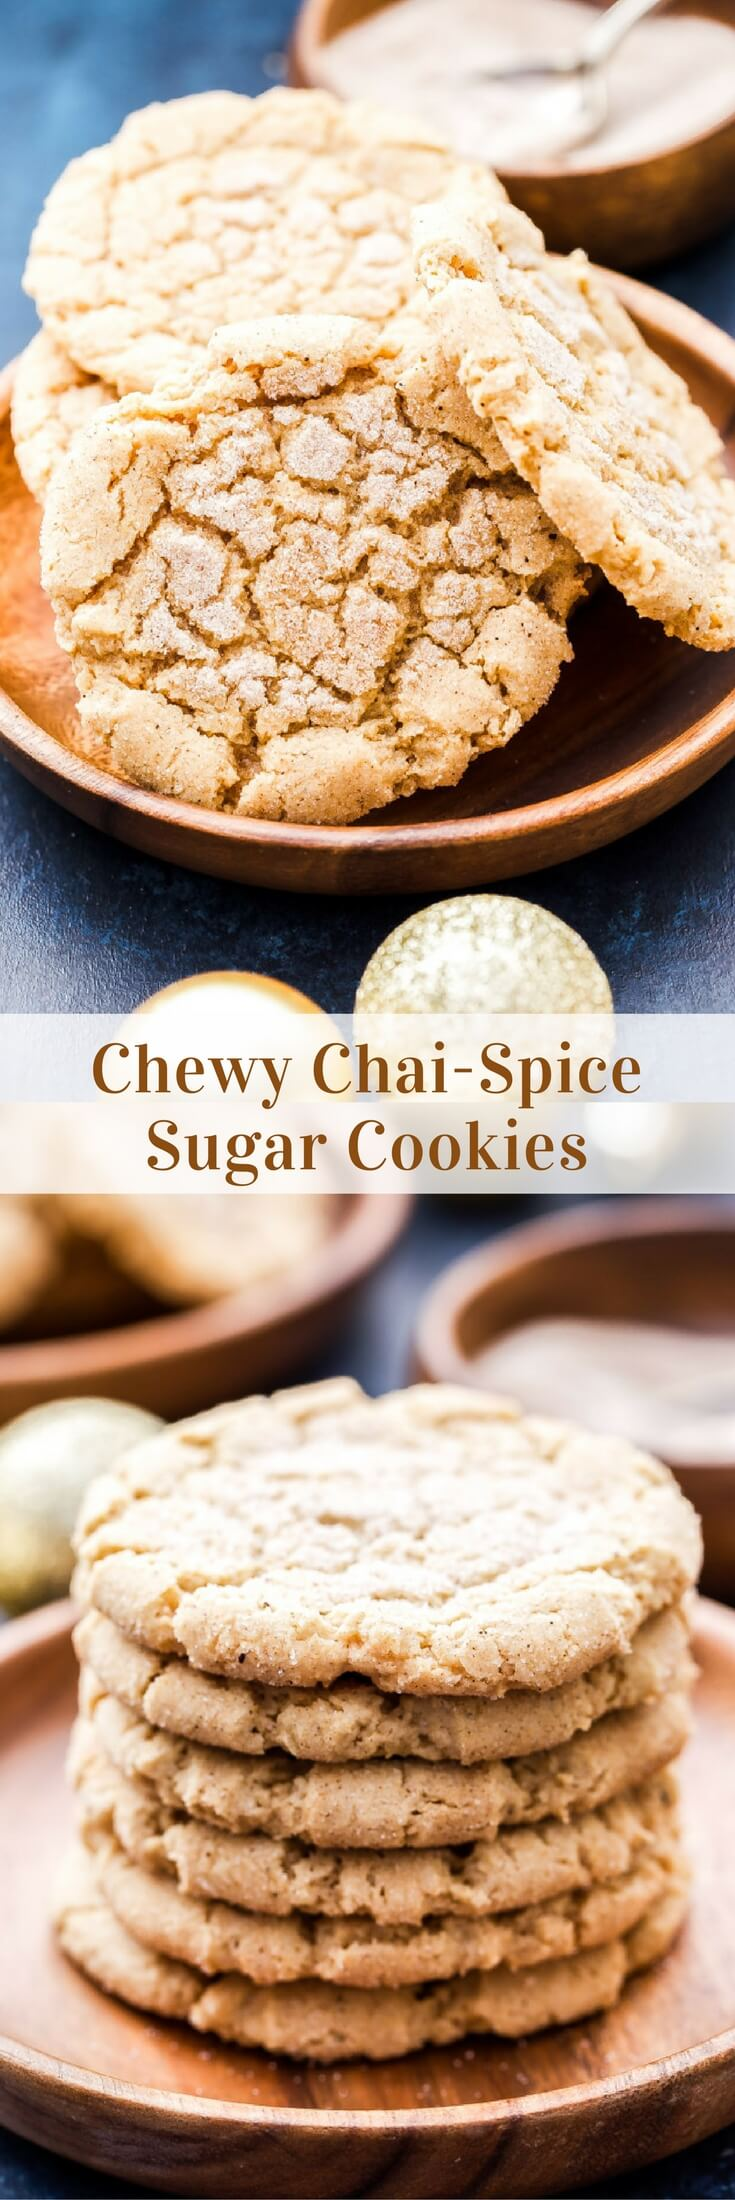 Chewy Chai-Spice Sugar Cookies - Recipe Runner